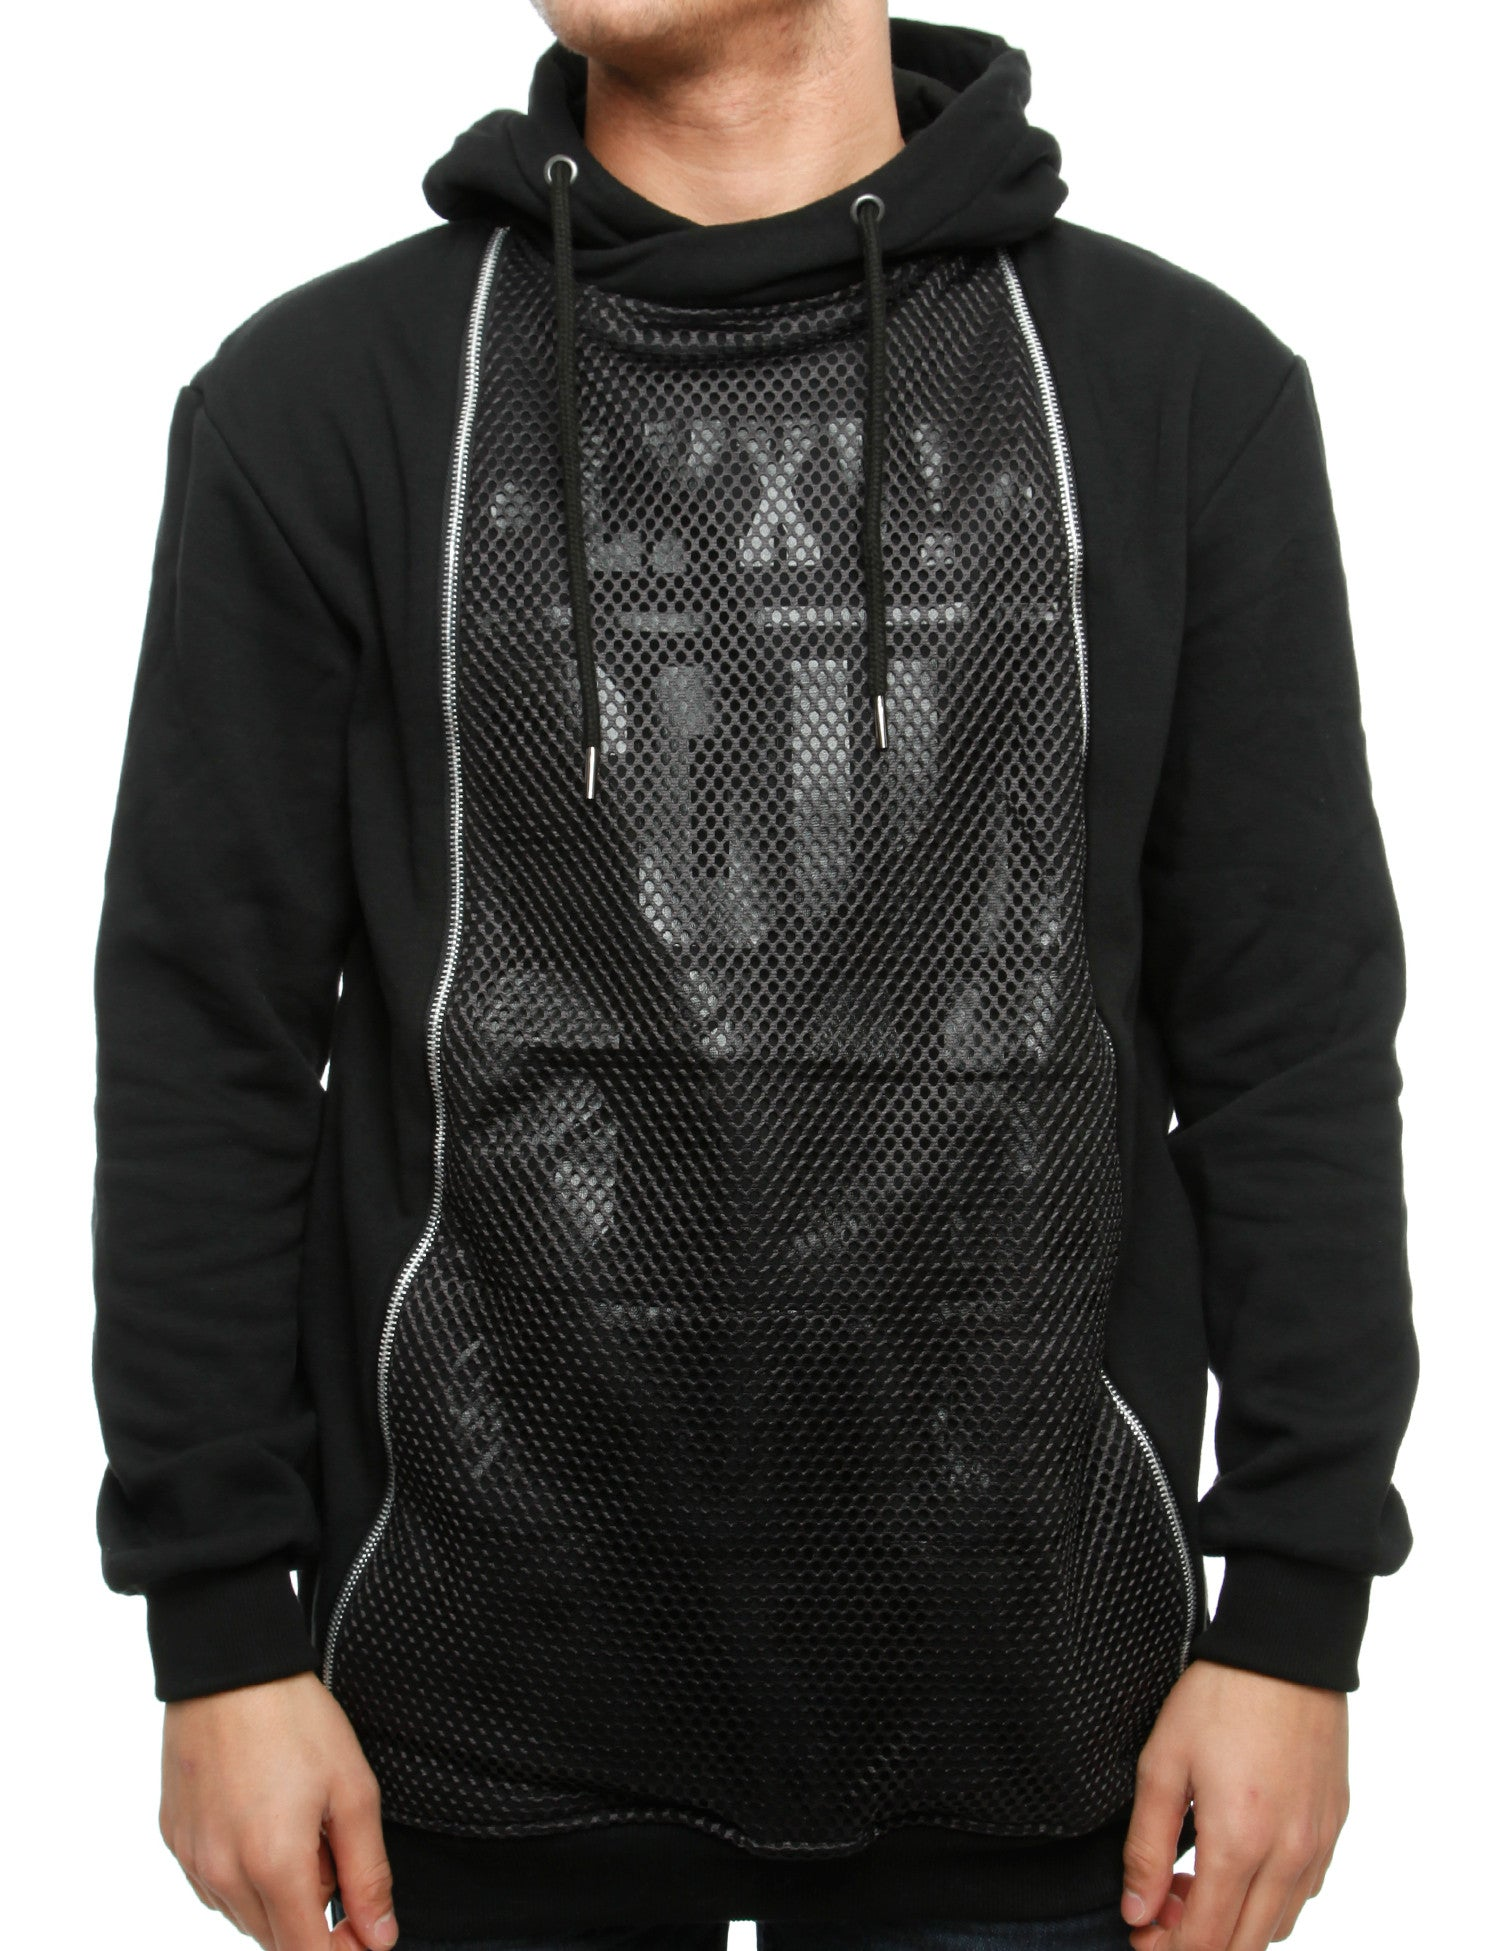 Soul Star MSW Ventrical Zip Hoody Black